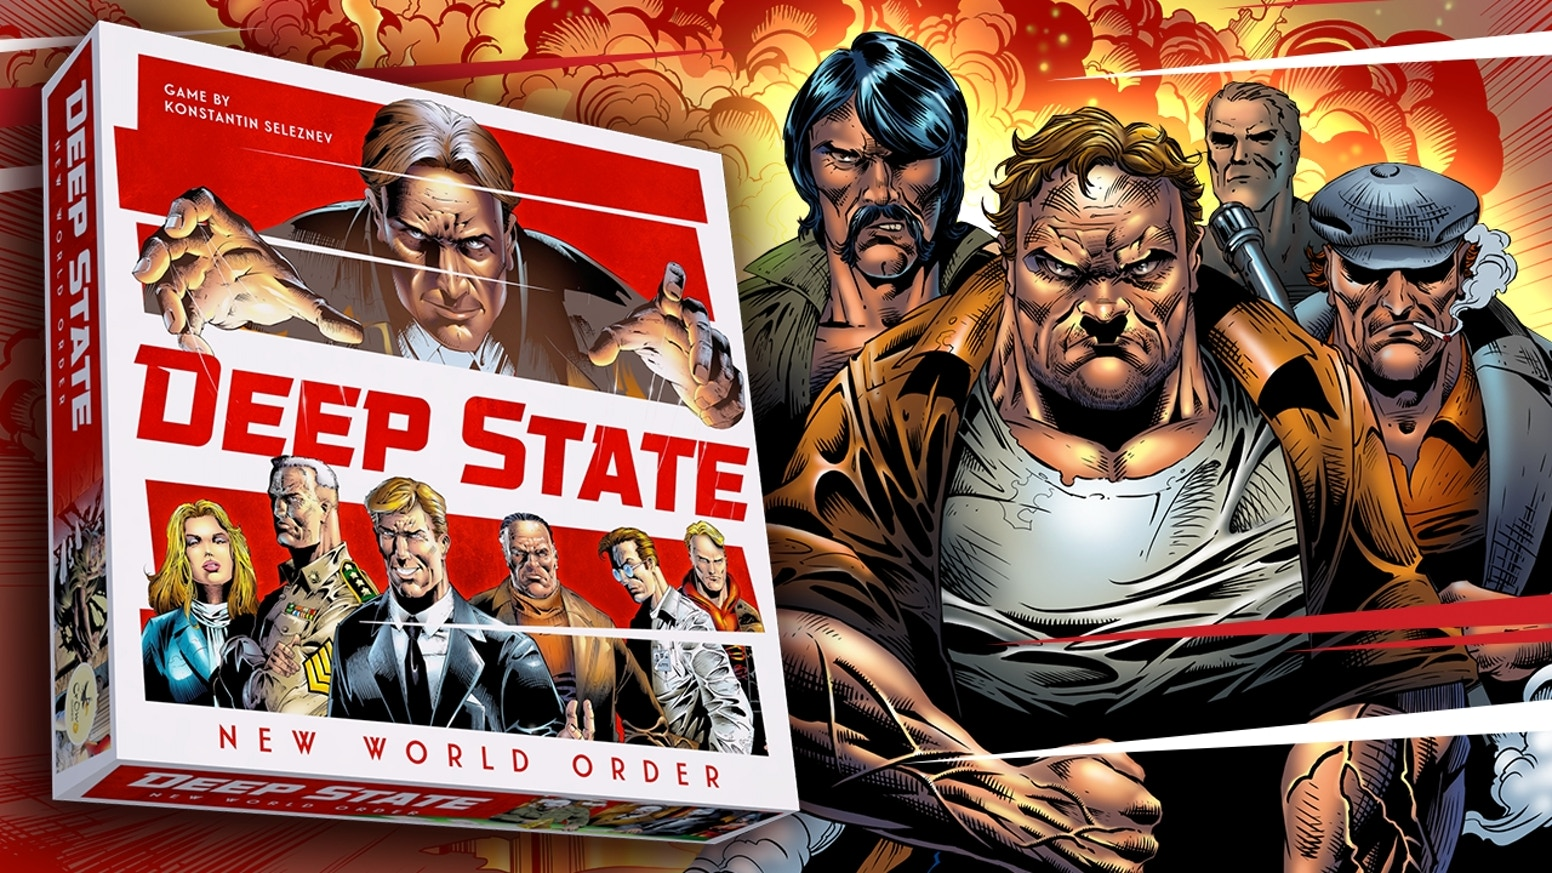 Seize the reins of power and rule the world! Strategy game of global conspiracies from the creators of Space Explorers.